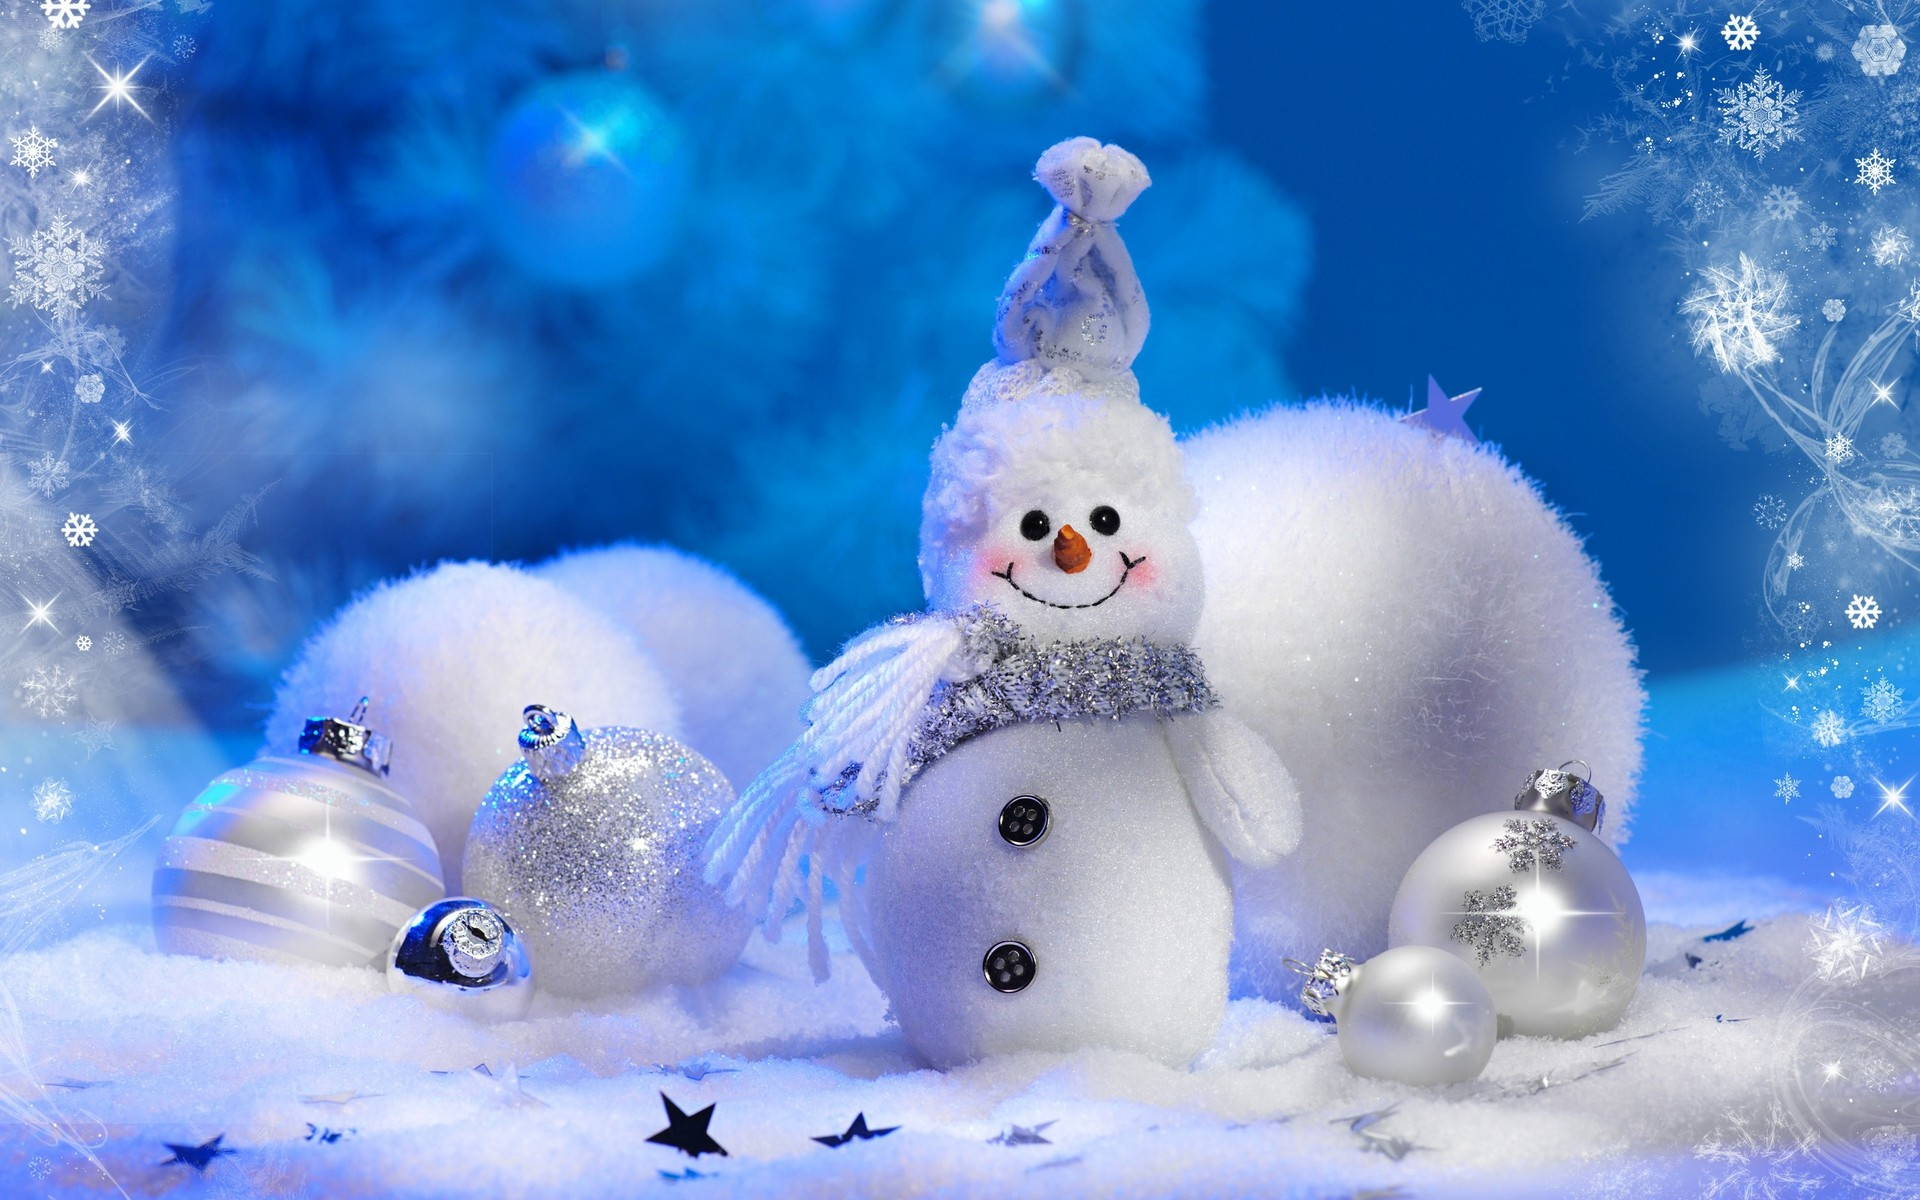 Cute Snowman Christmas Wallpaper Frosty The Snowman Wallpaper 56 Images